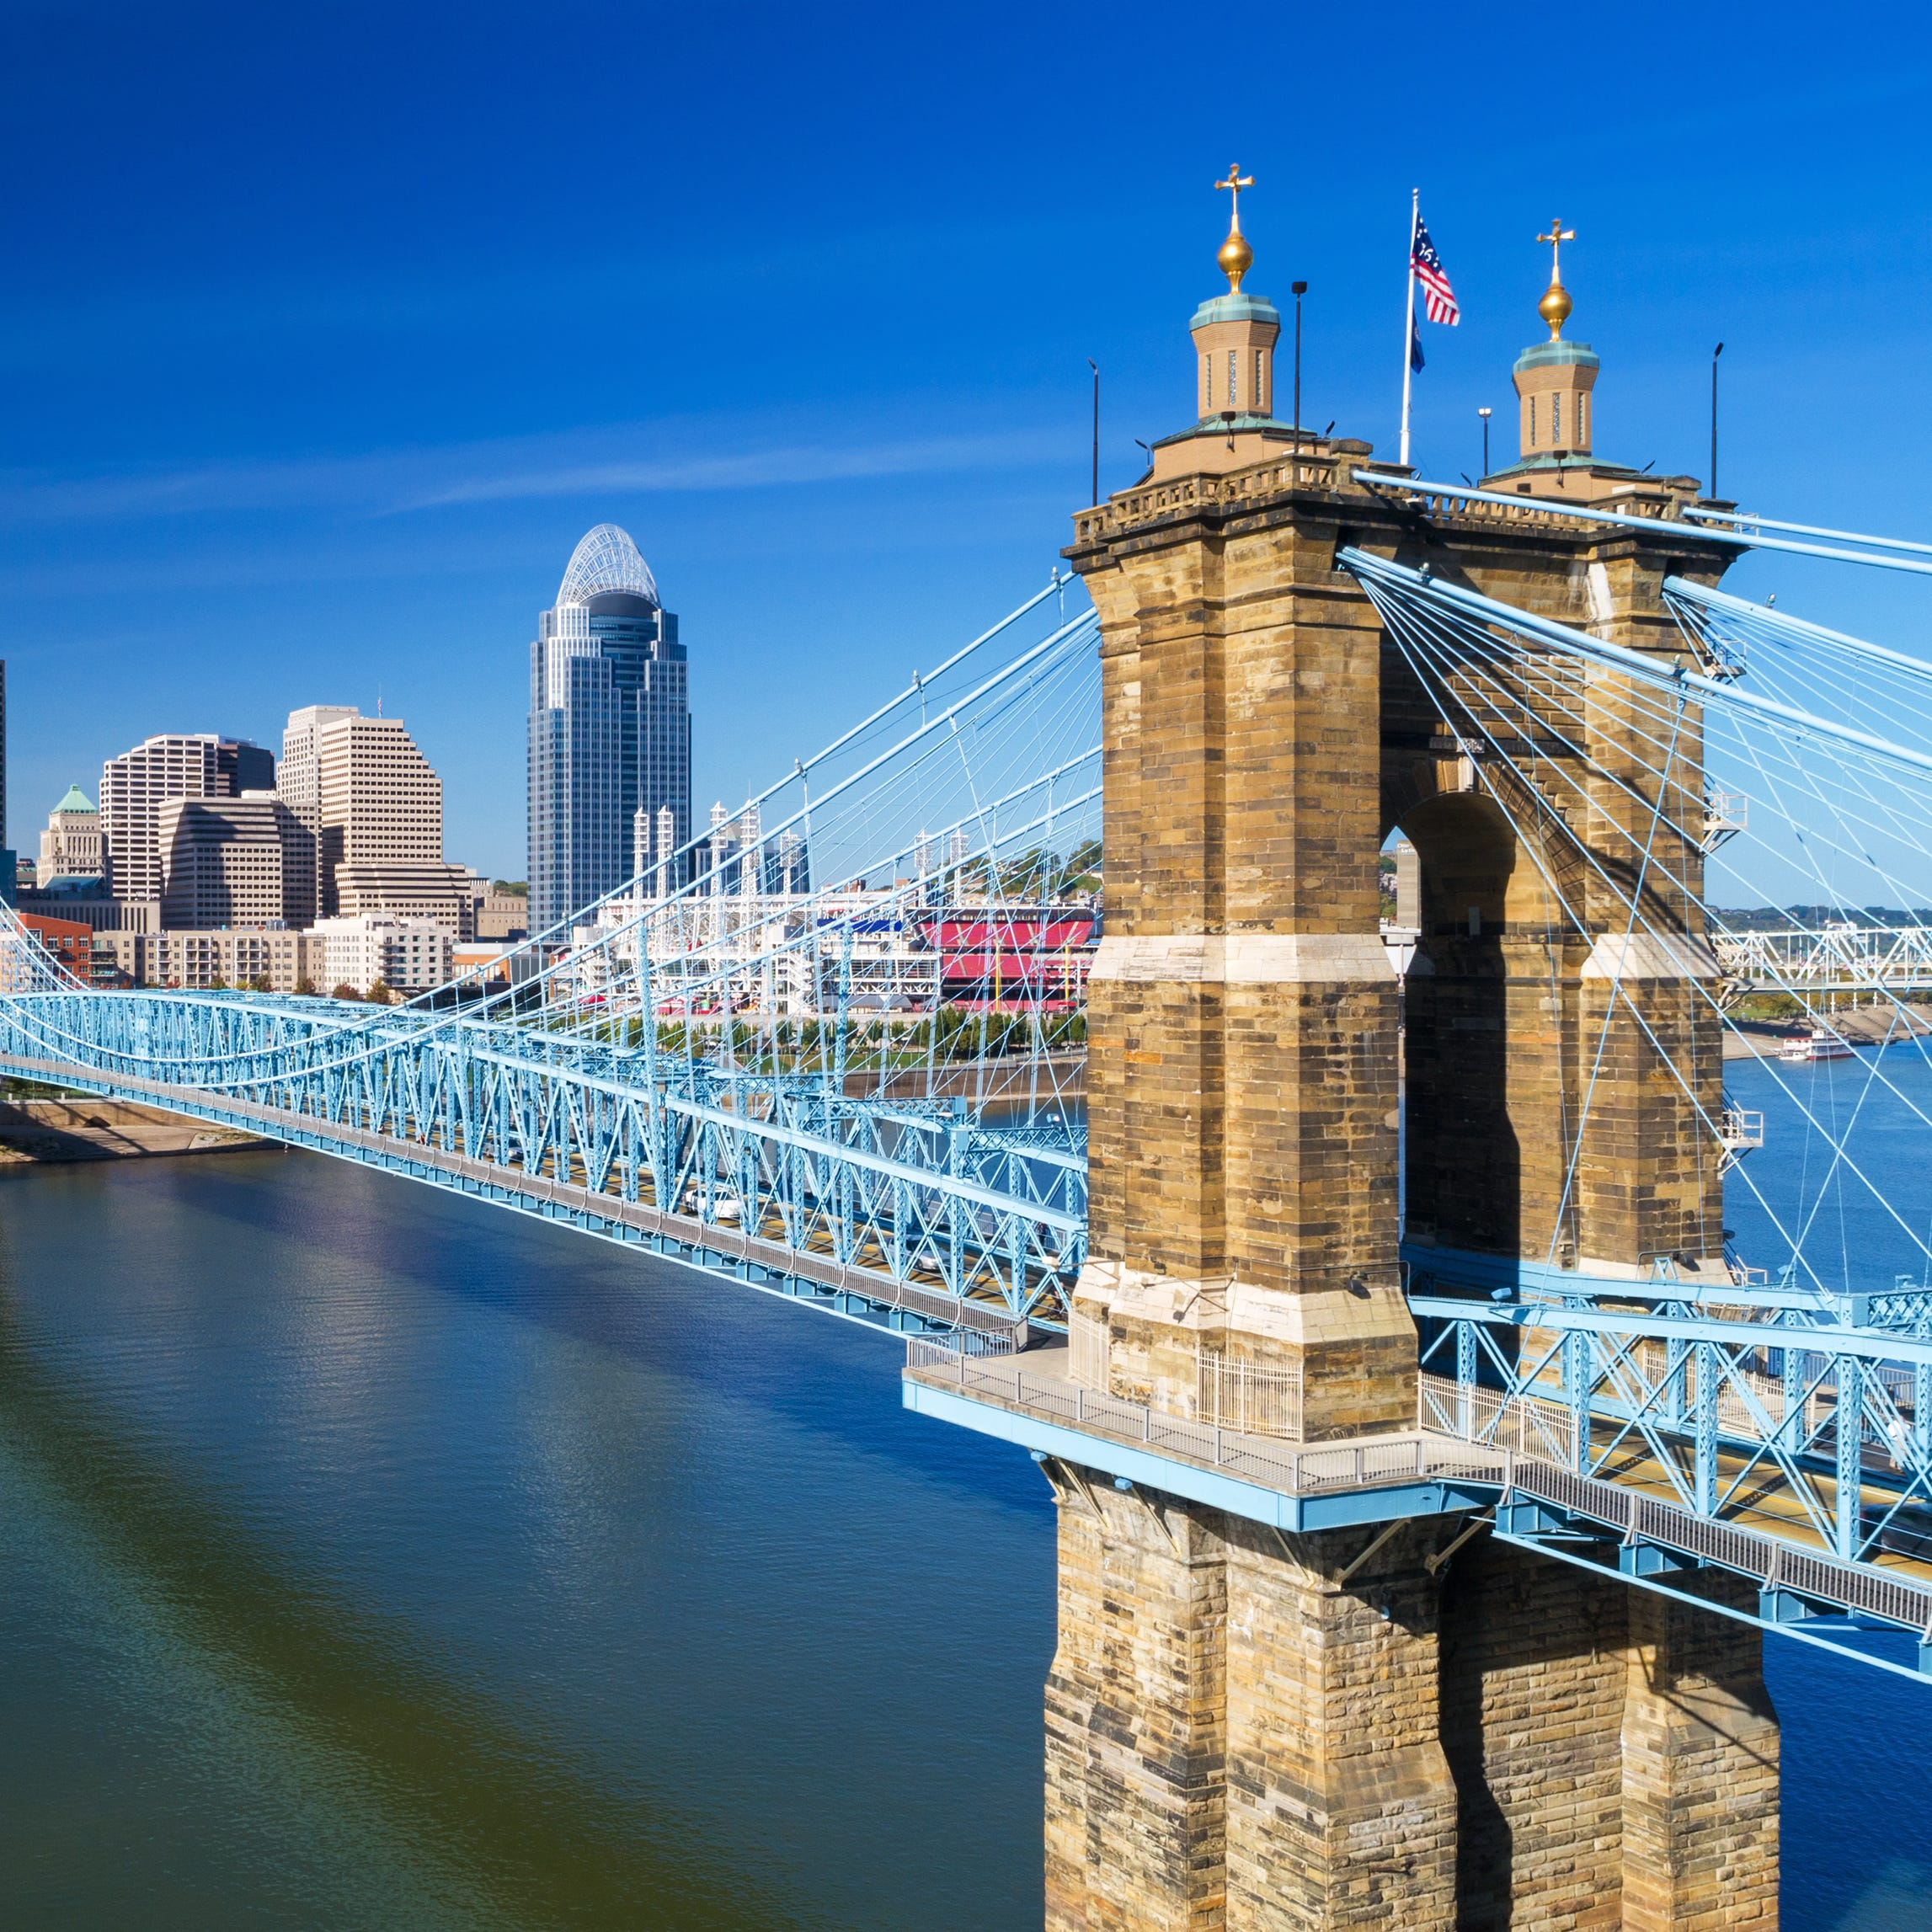 Cincinnati weather: Chilly morning, then warm and sunny before next storm system arrives